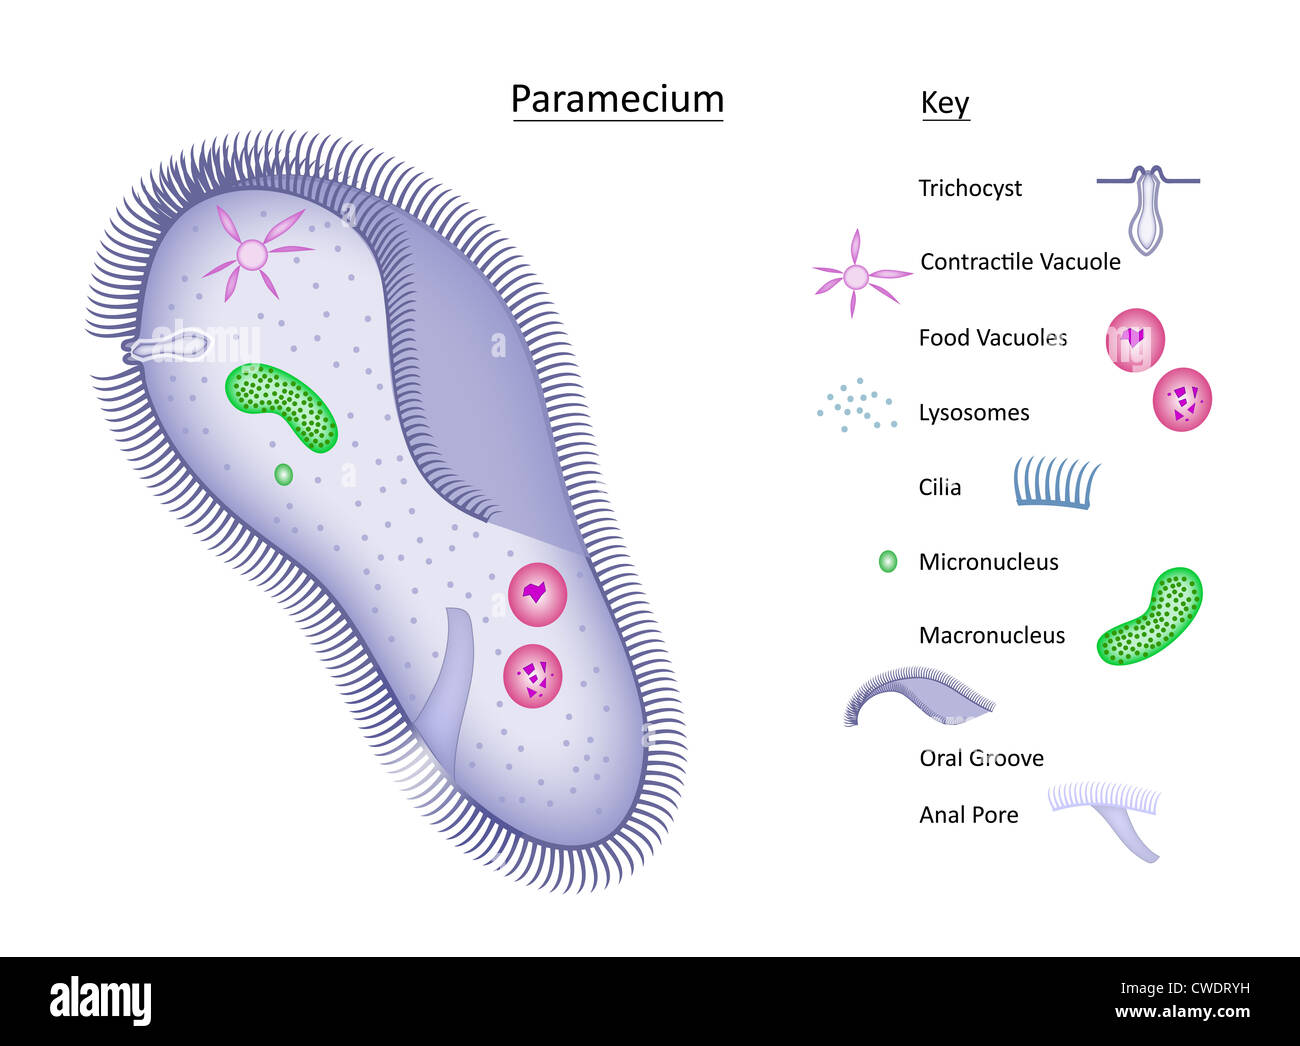 Caudatum Labeled Microscope Paramecium Under